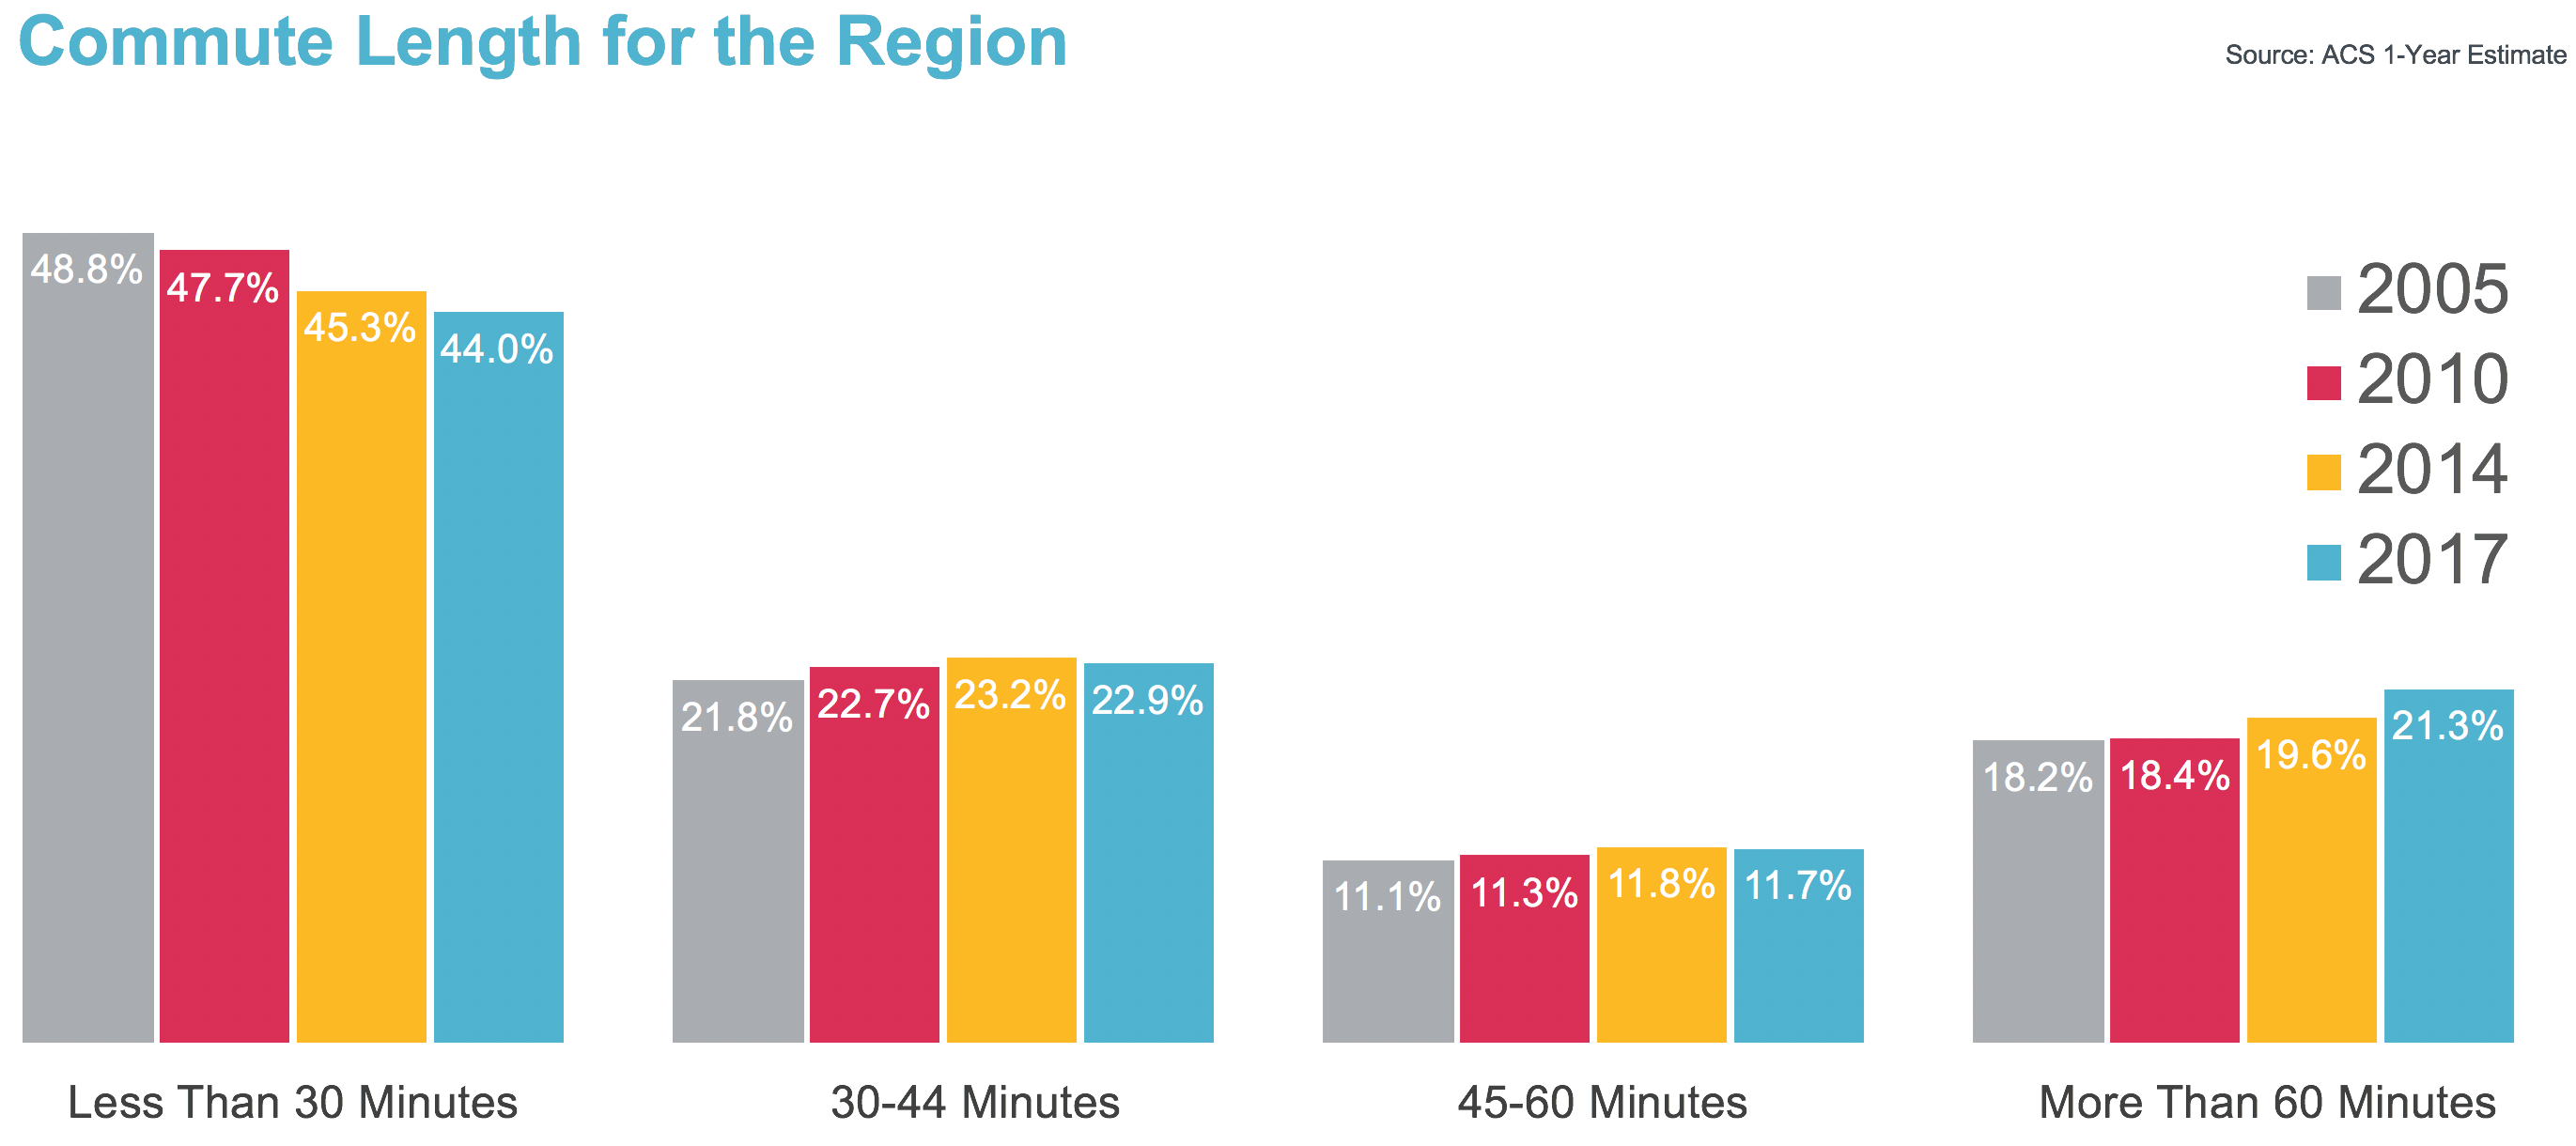 Chart: Commute Length for the Region